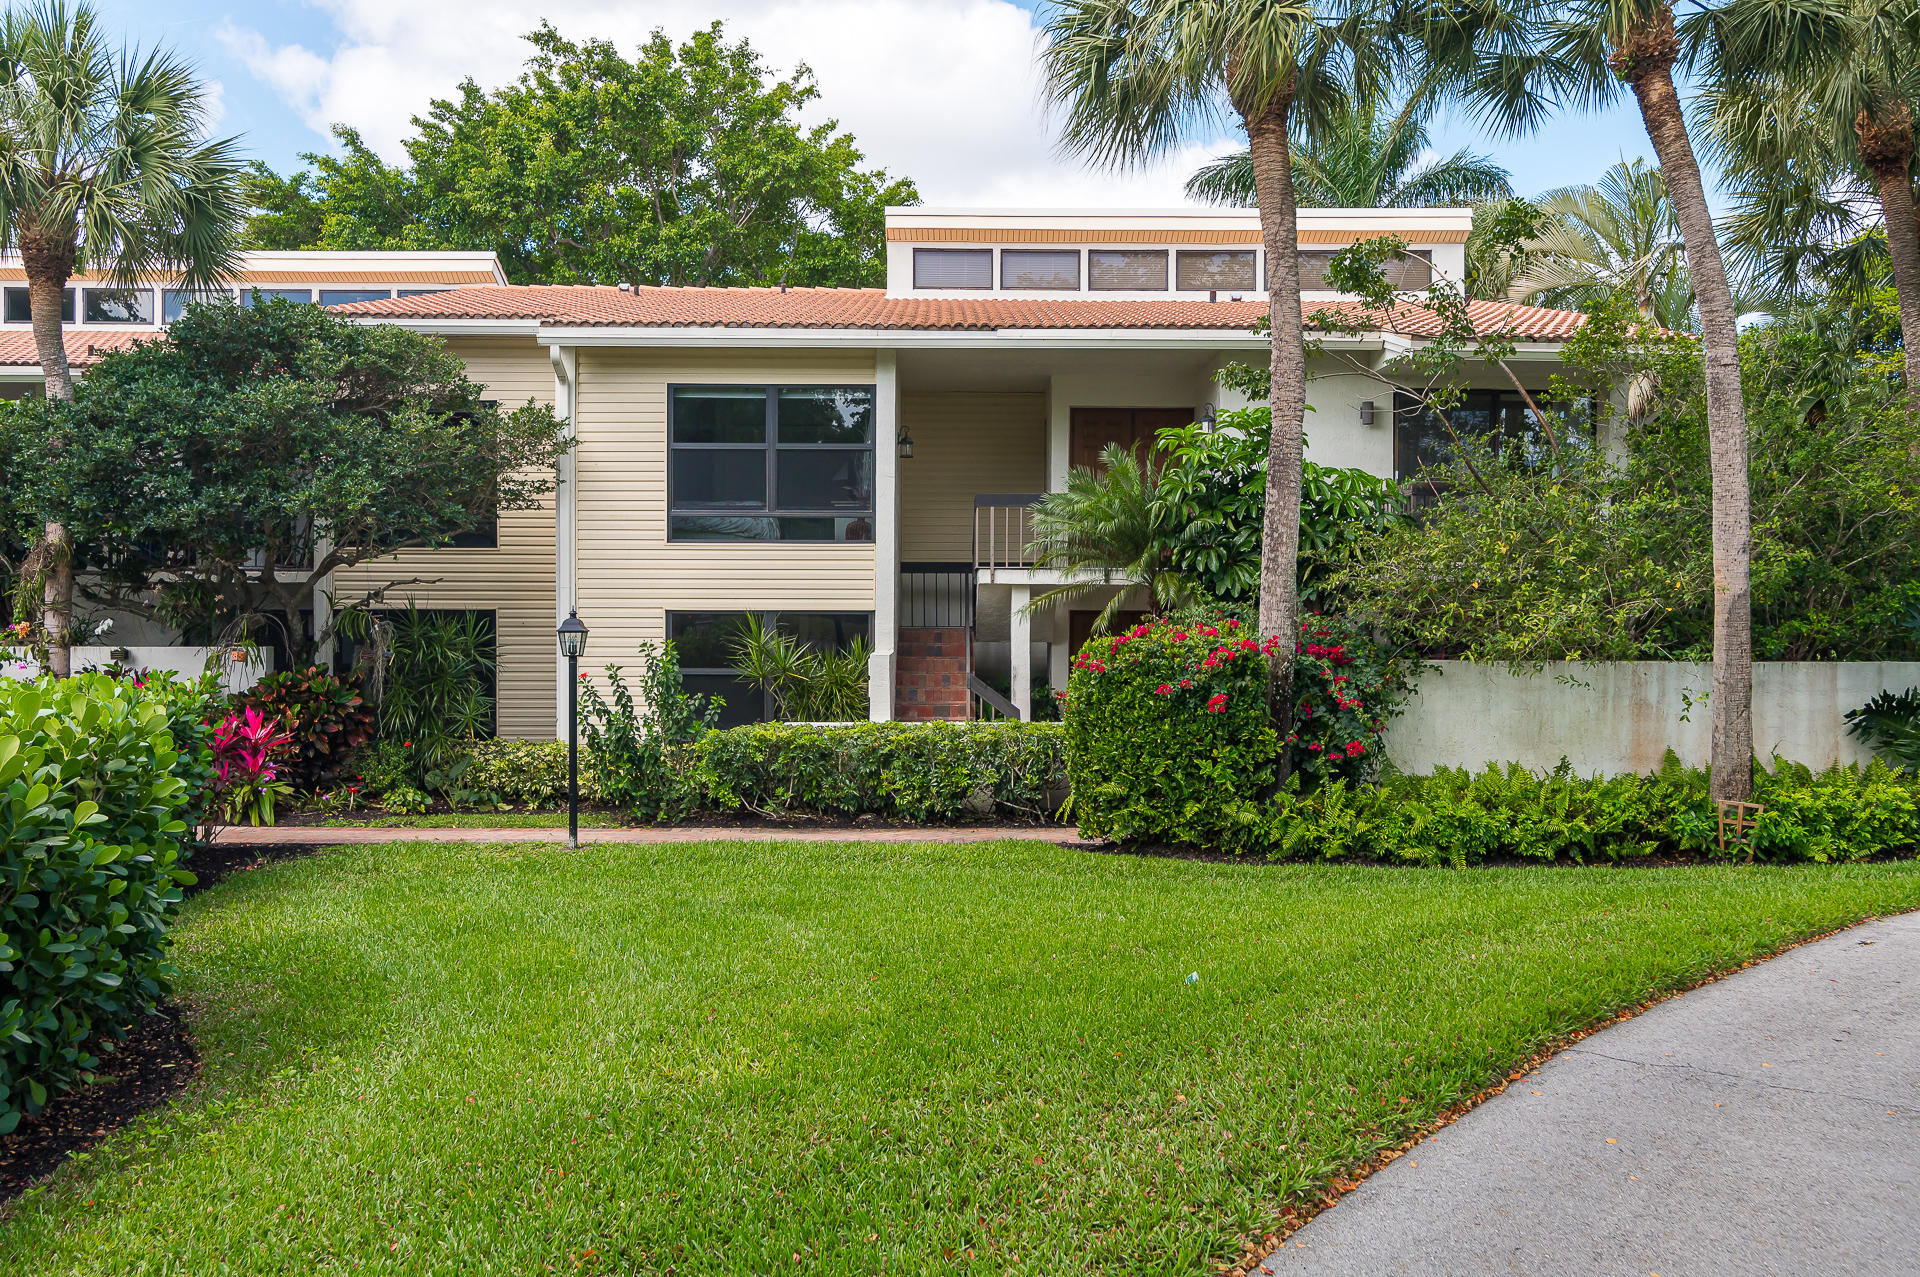 6774  Willow Wood Drive 1108 For Sale 10700518, FL